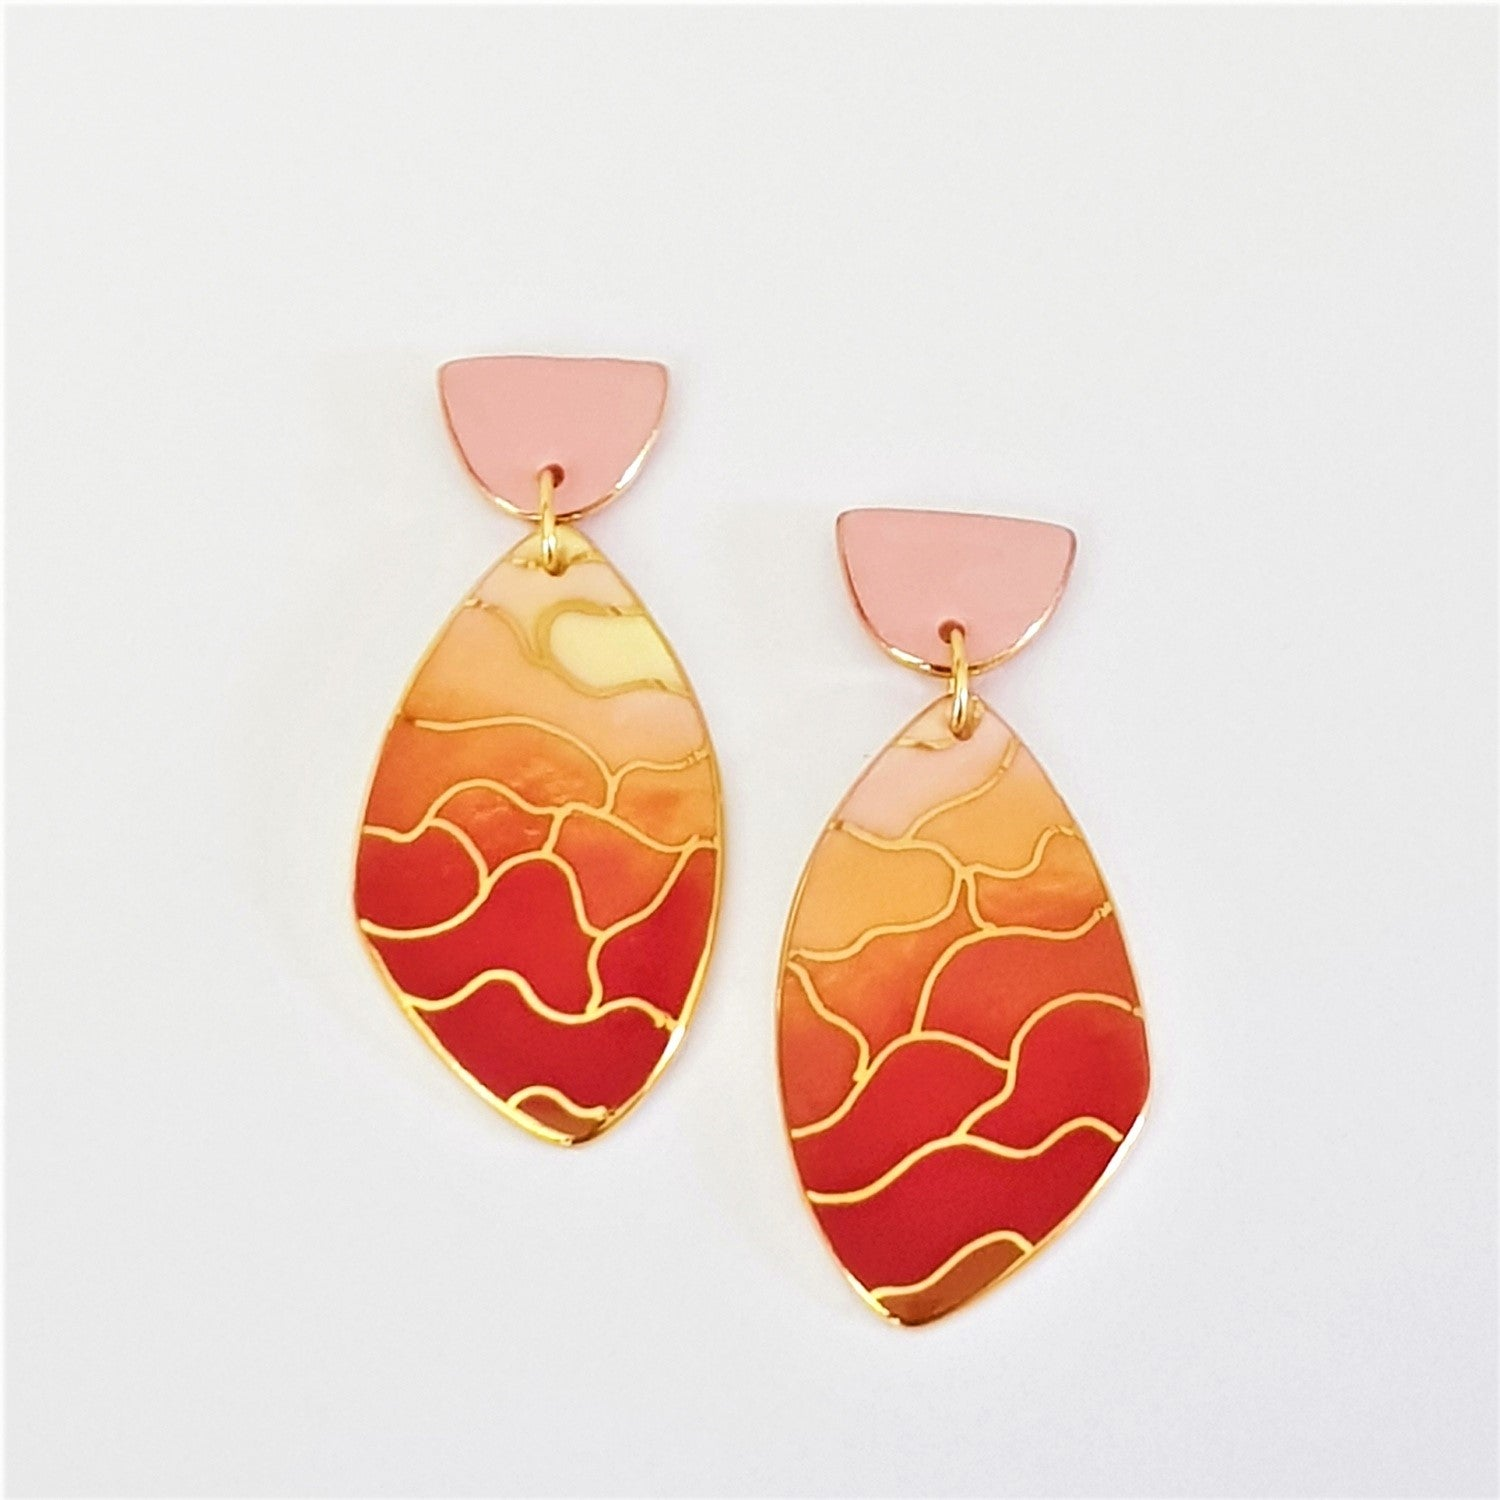 porcelain double drops earrings, sunset inspired wings